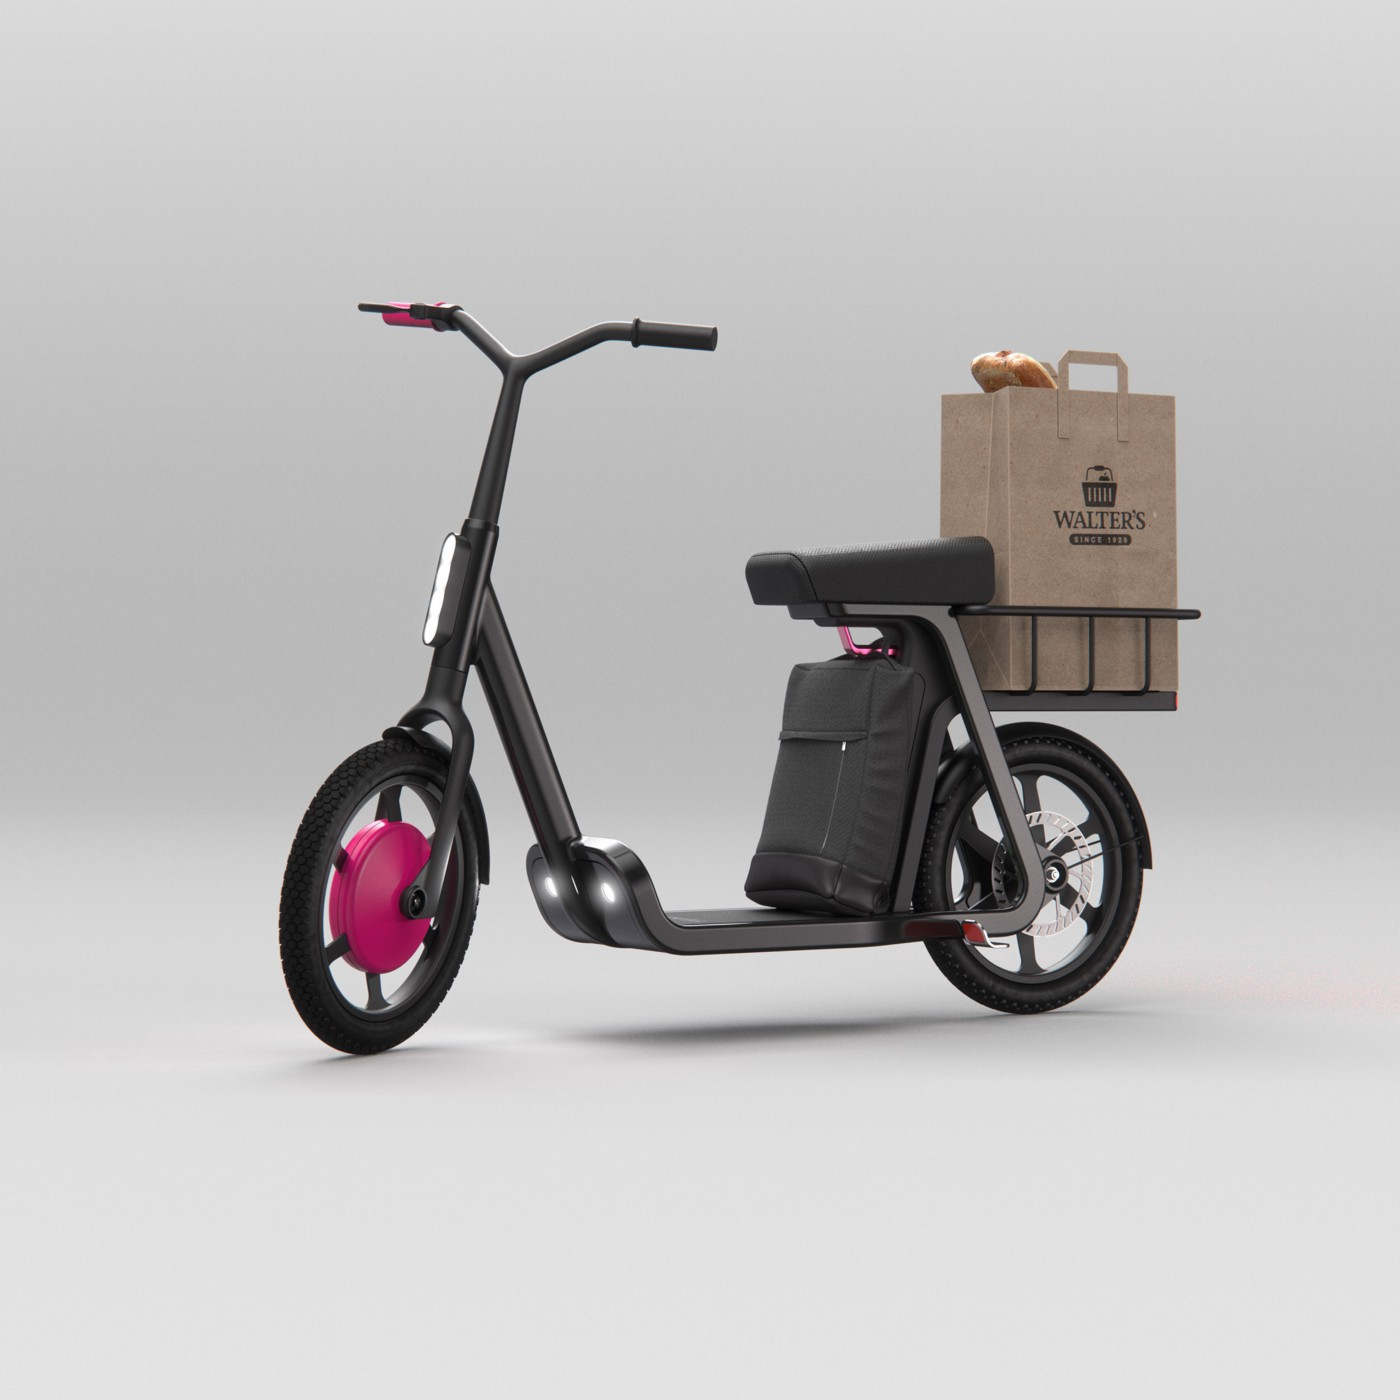 Proposed perfect eScooter of the Future by Teague, https://teague.com/insights/mobility/the-future-of-electric-shared-scooters